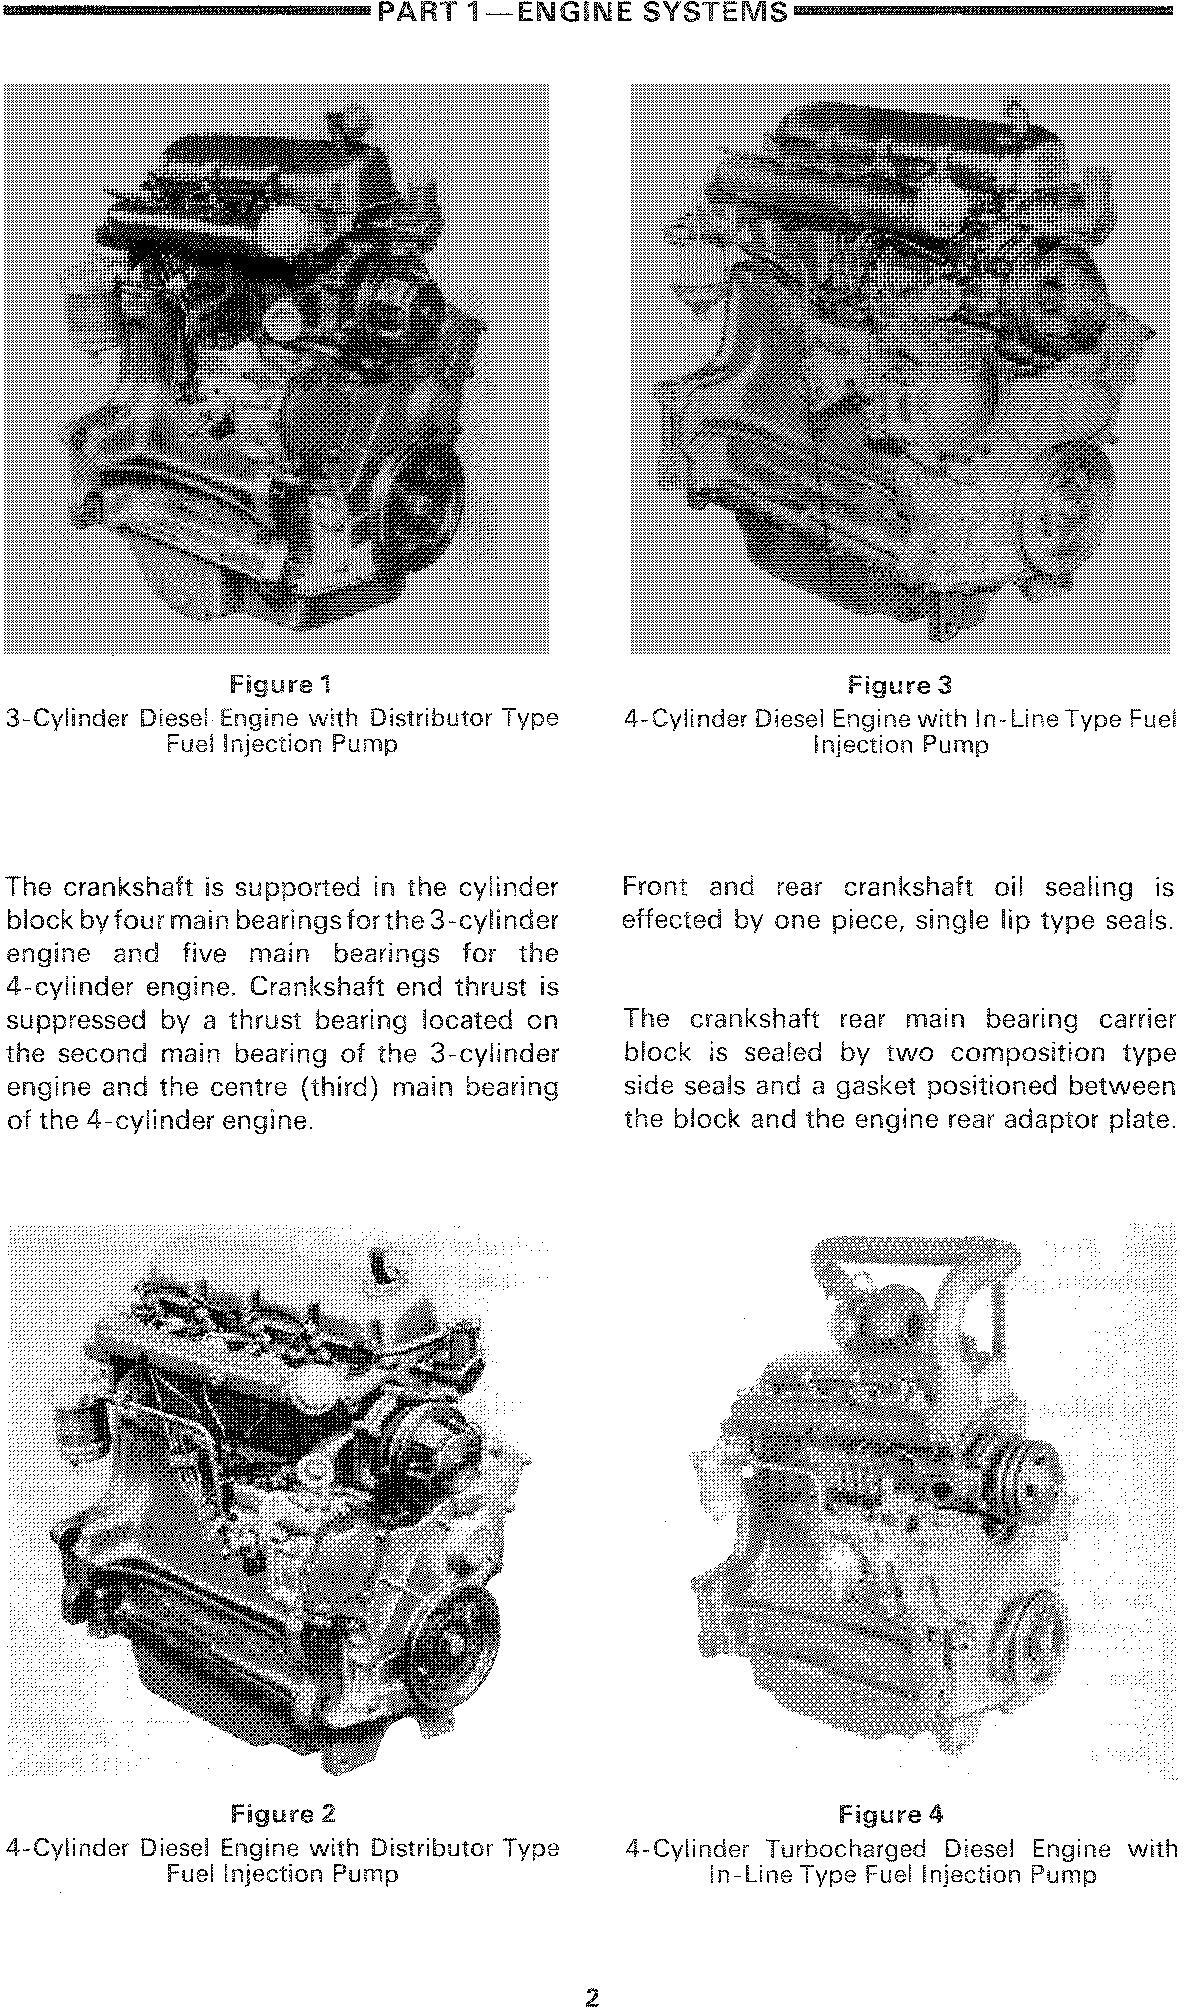 Ford , New Holland 2310-8210 (xx10 Series), 3230, 3430, 3930, 4630, 4830, 5030 Tractor Service Manual - 1